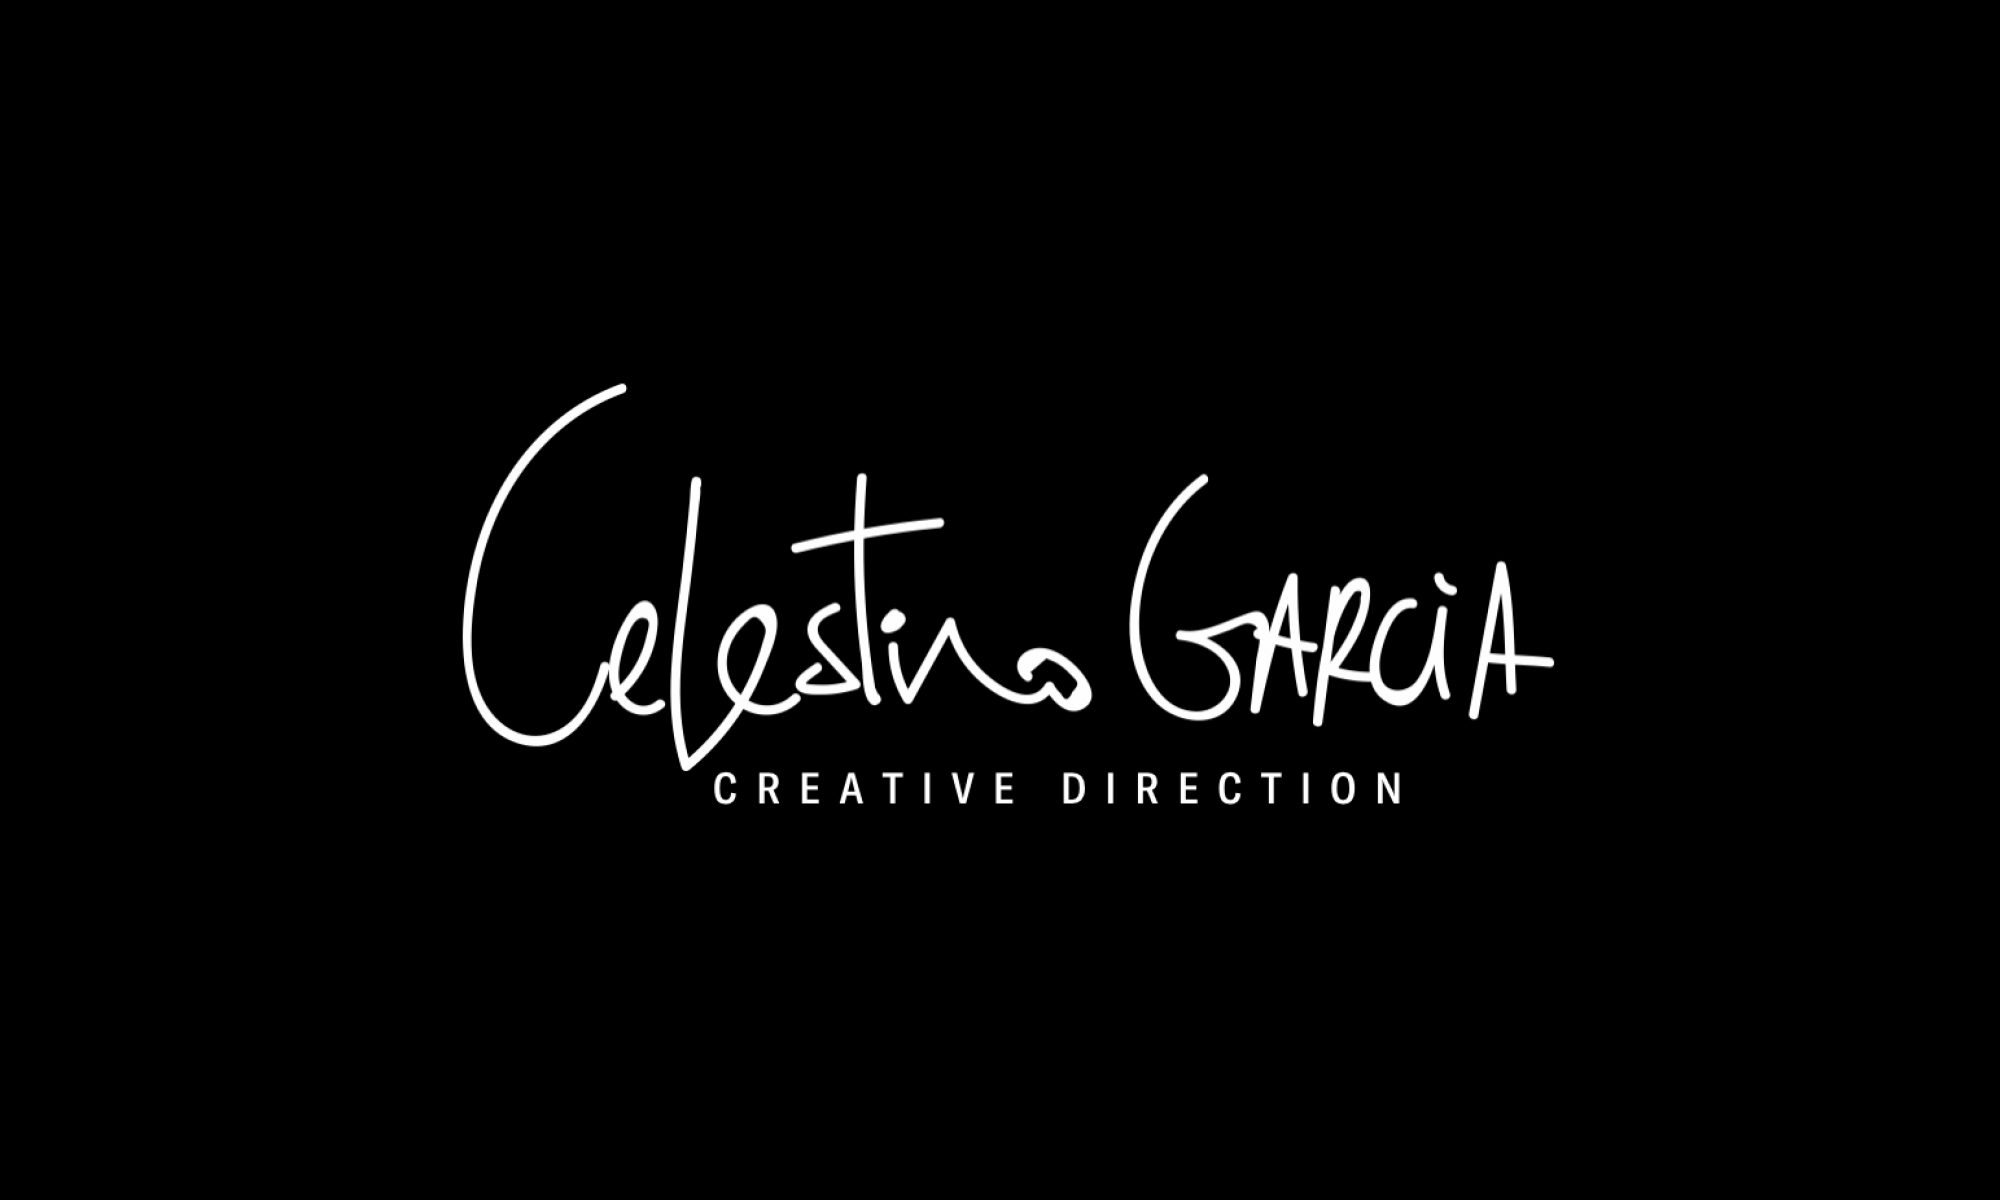 Celestino Creative Direction